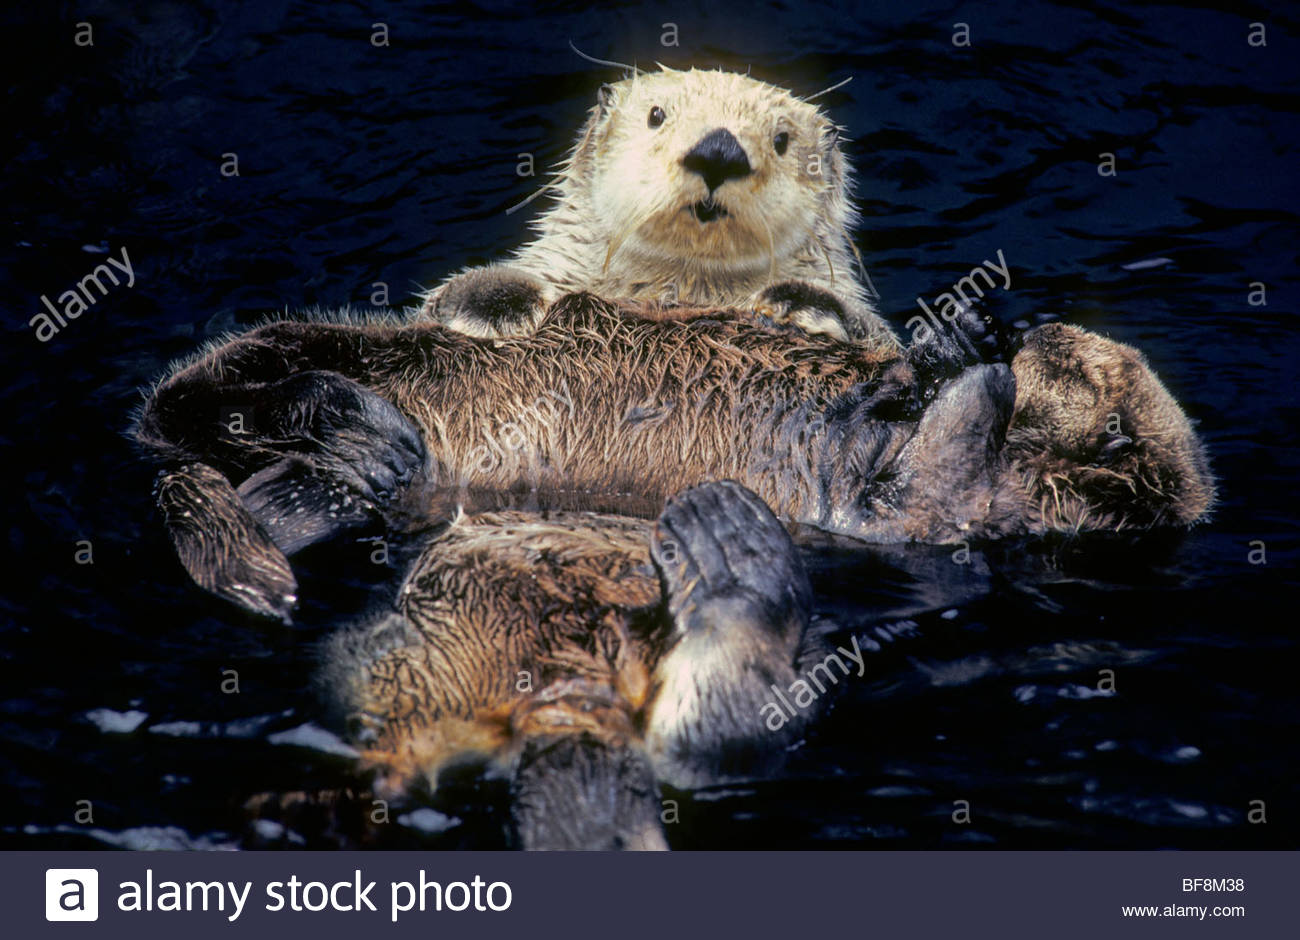 Sea otter and pup, Enhydra lutris, British Columbia, Canada - Stock Image